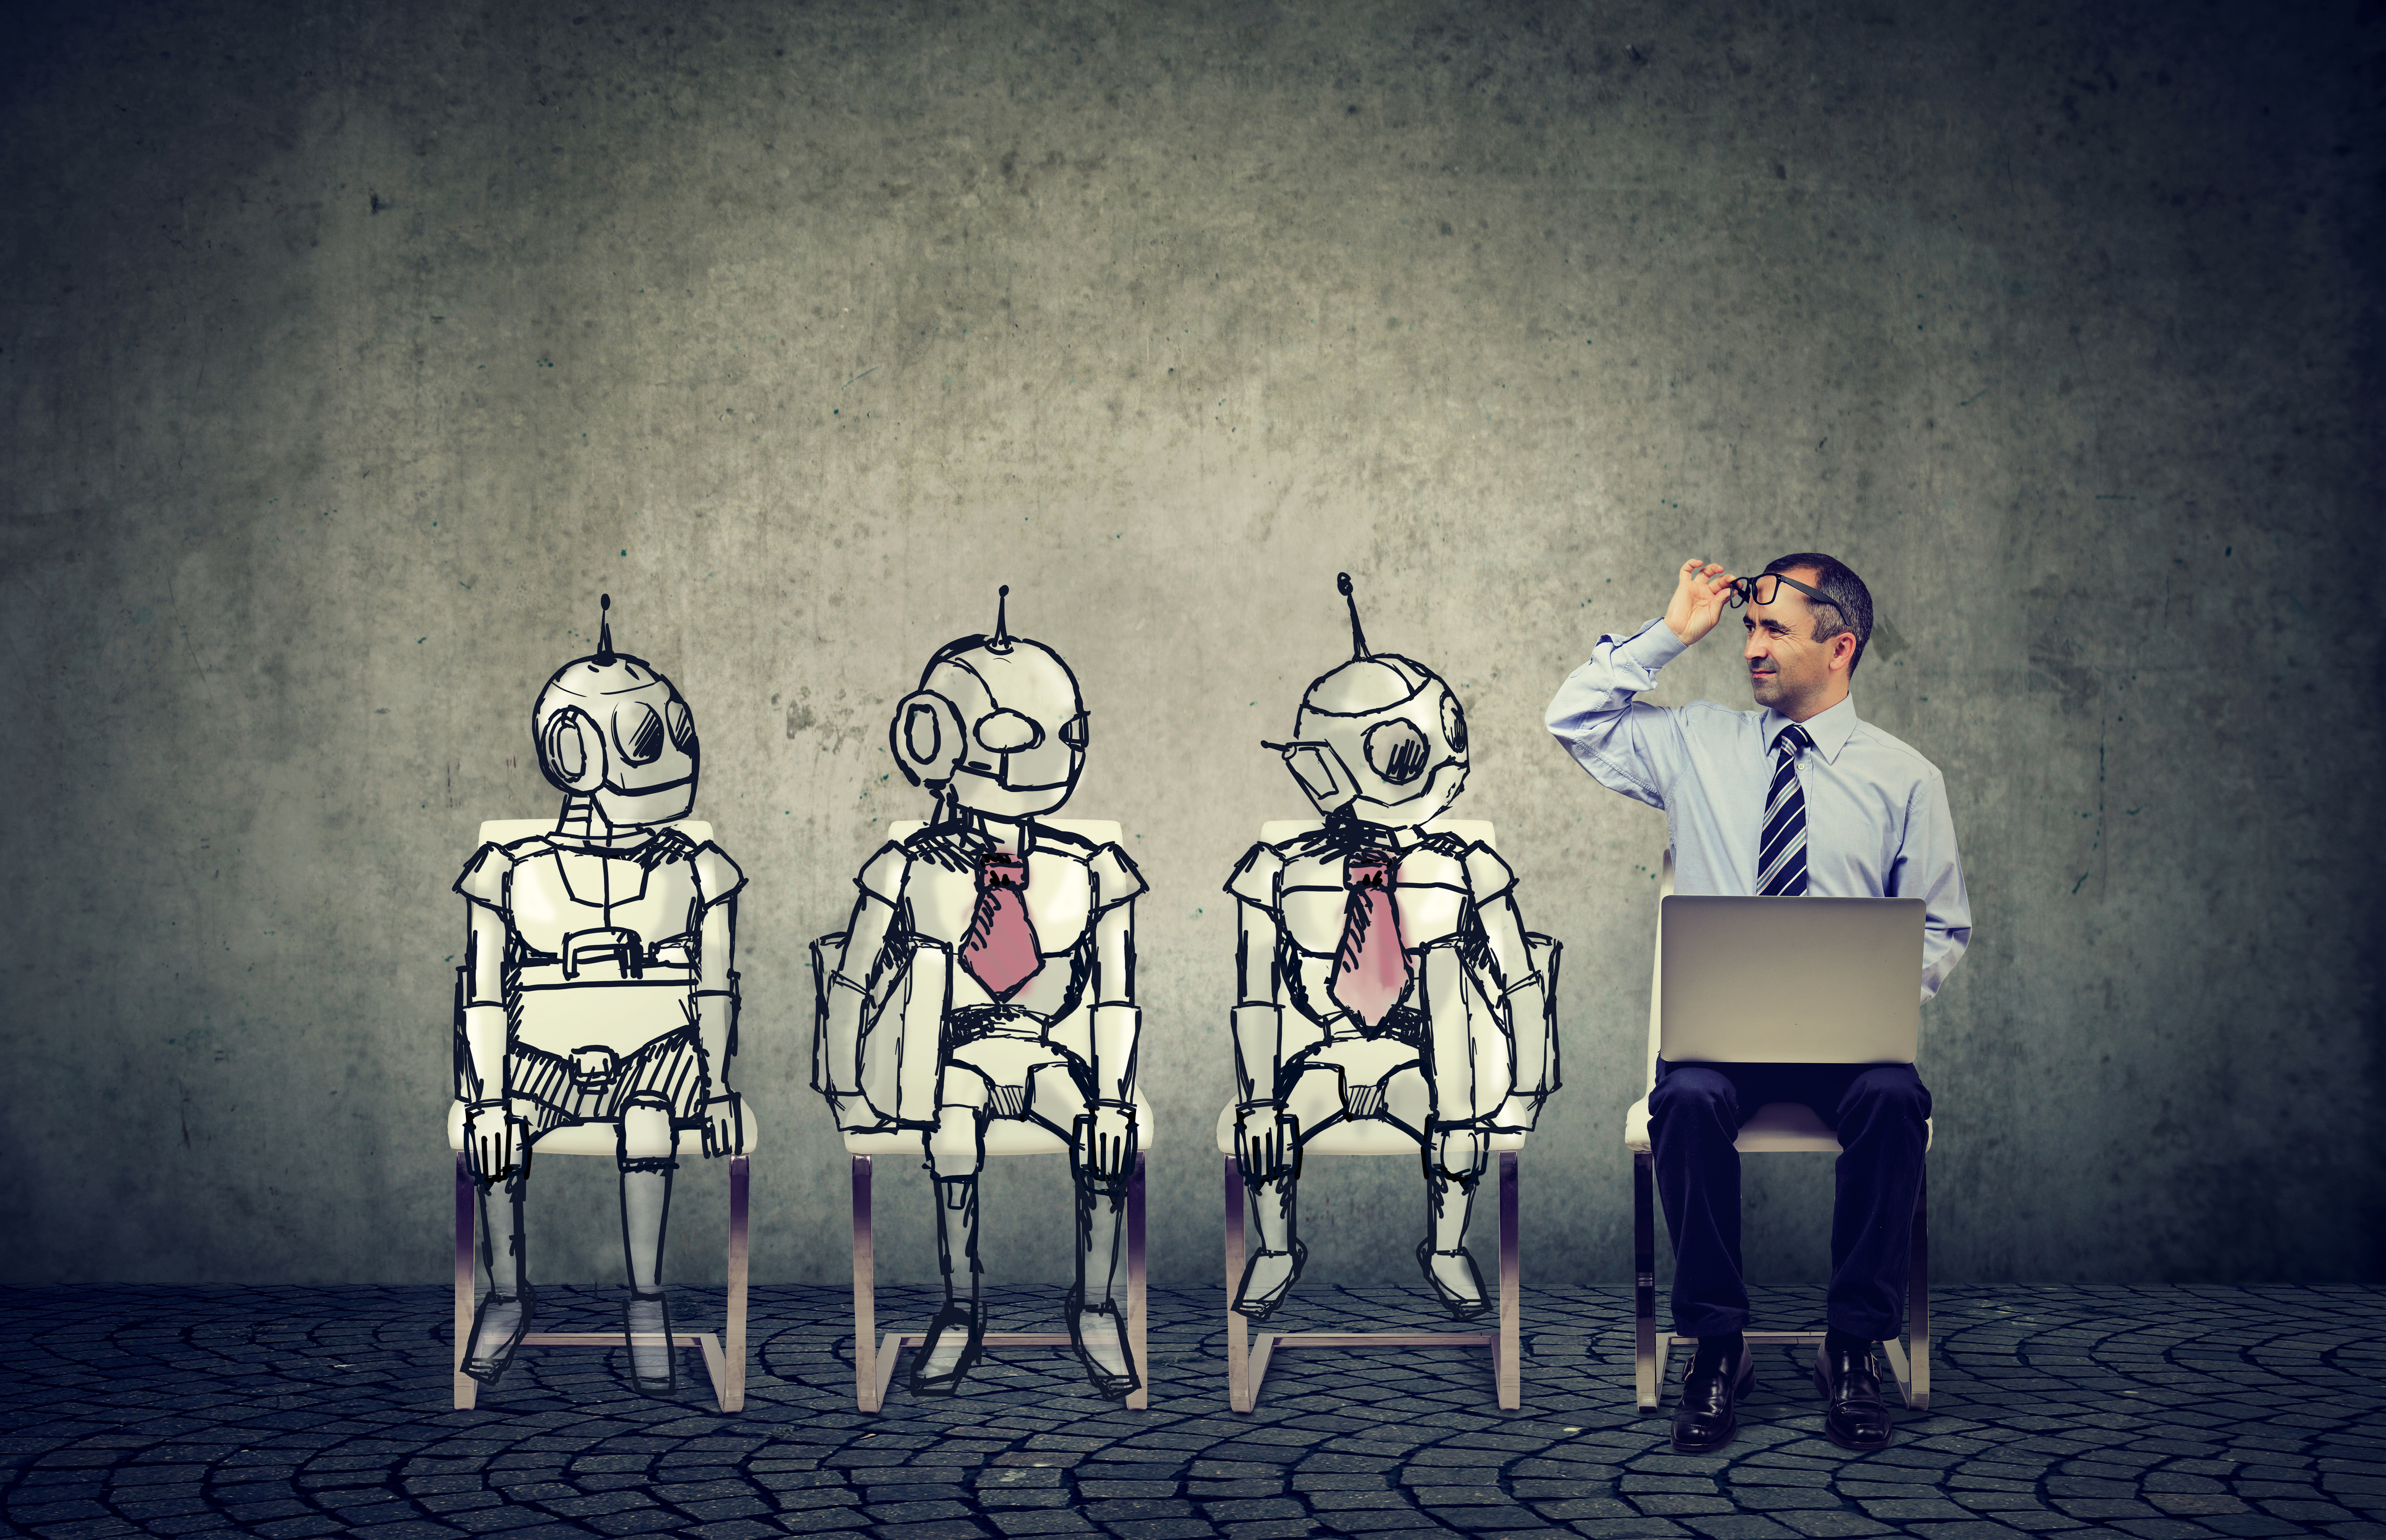 Main visual : Keeping Work Human: How to Keep Work Human in the Wake of HR Tech Advancements